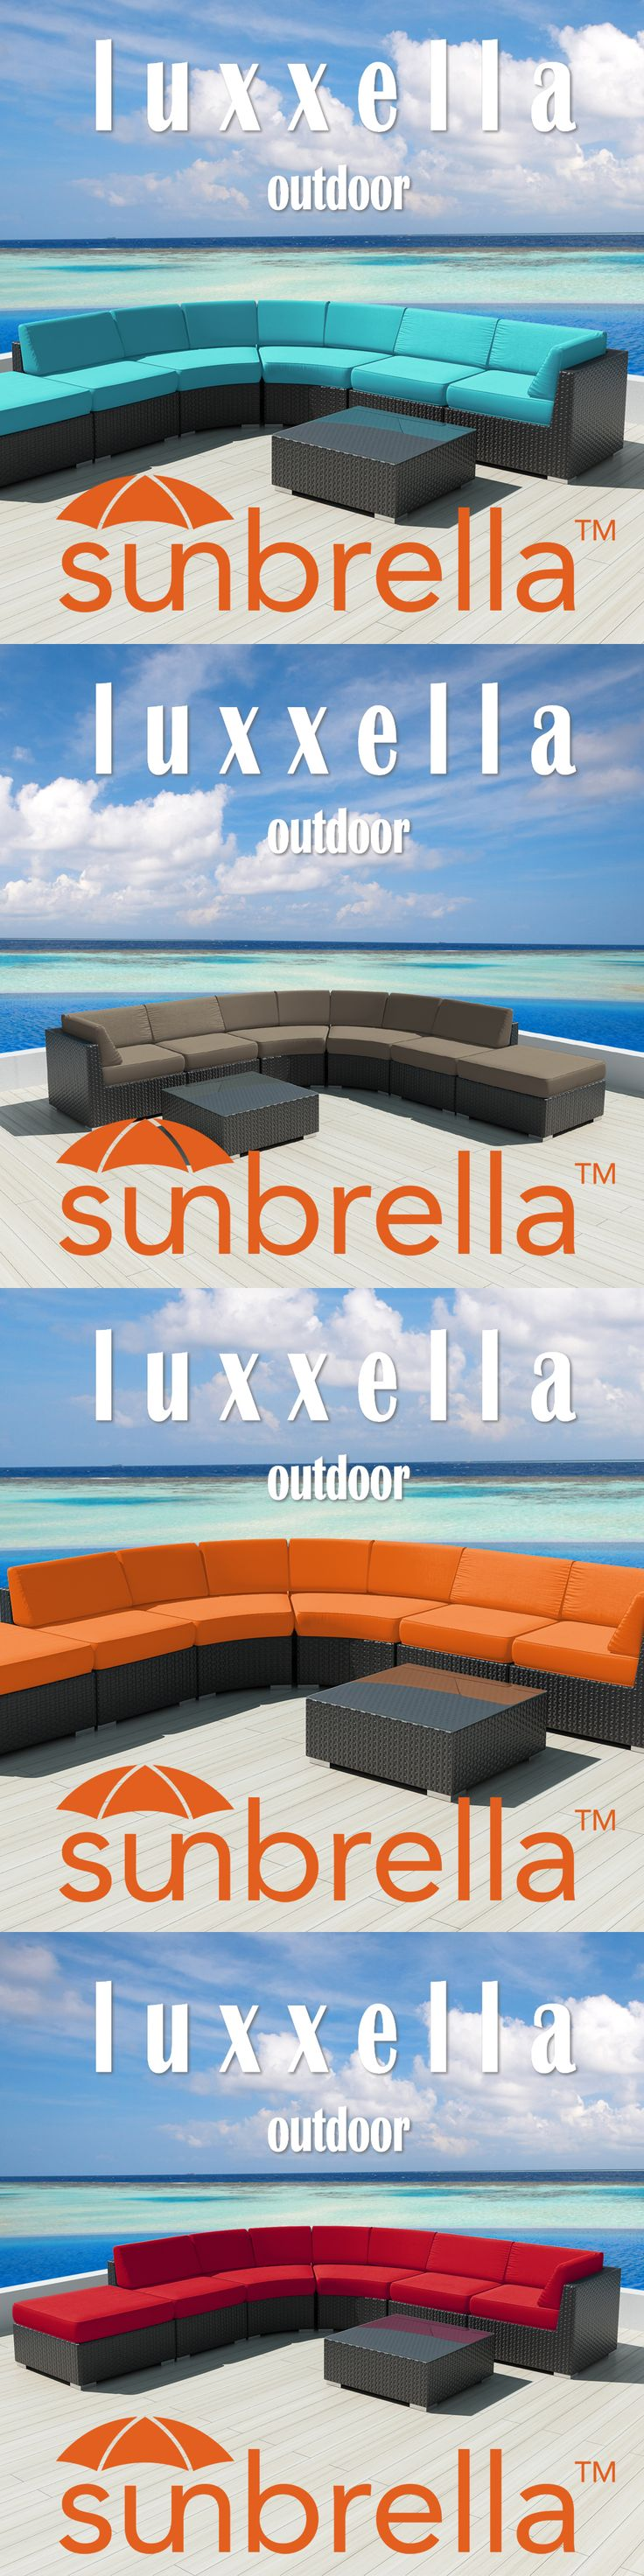 Luxxella Sunbrella Outdoor Furniture set